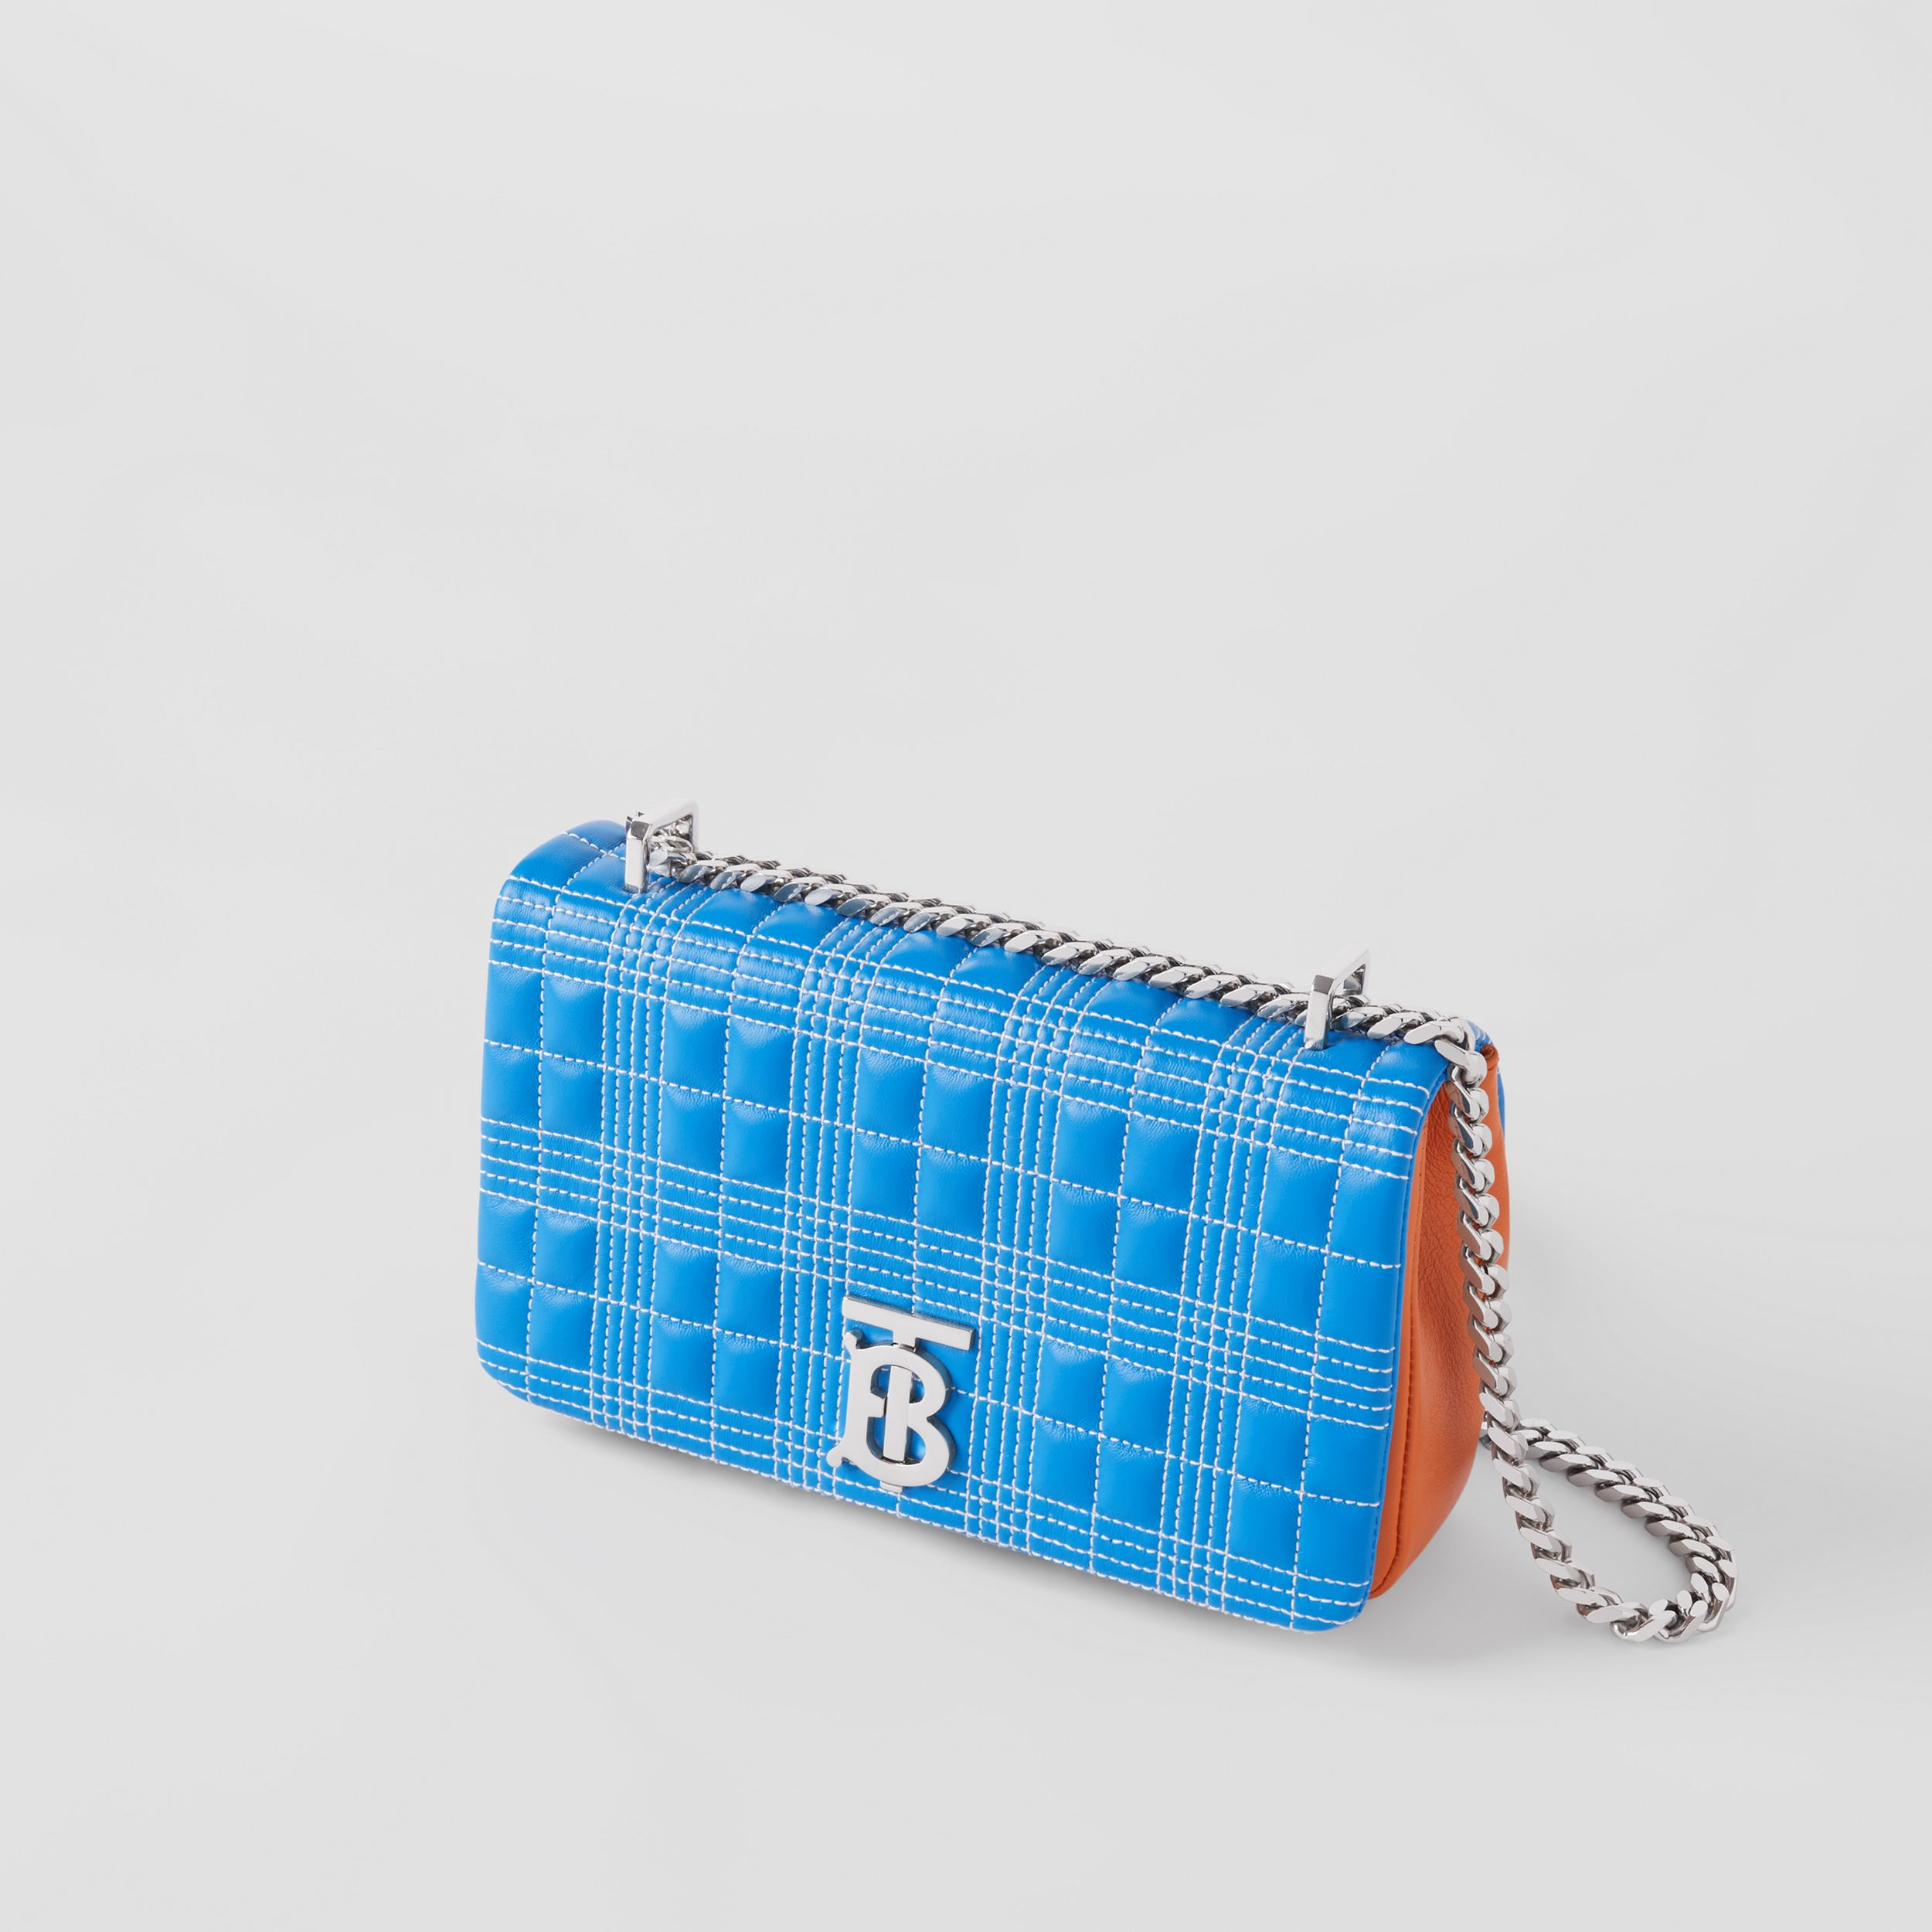 Small Quilted Tri-tone Lambskin Lola Bag in Cyan Blue/orange/pink - Women | Burberry - 4